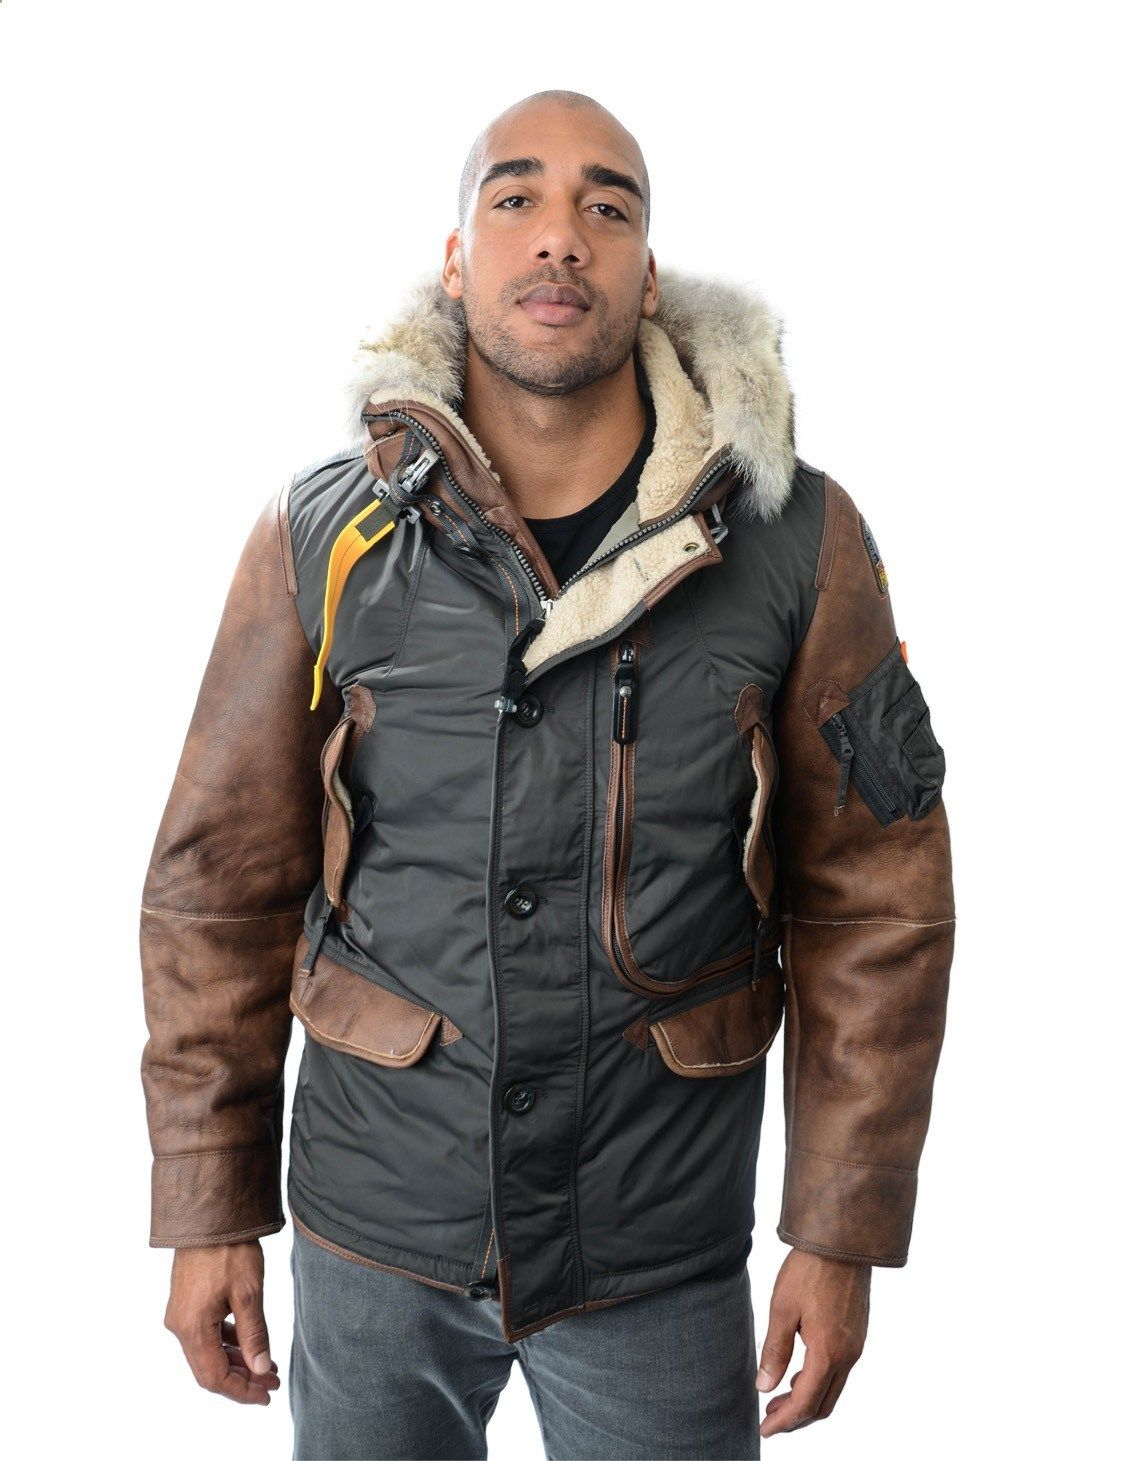 Parajumpers Right Hand Special Man Jacket Asphalt | Accent Clothing www.accentclothin.